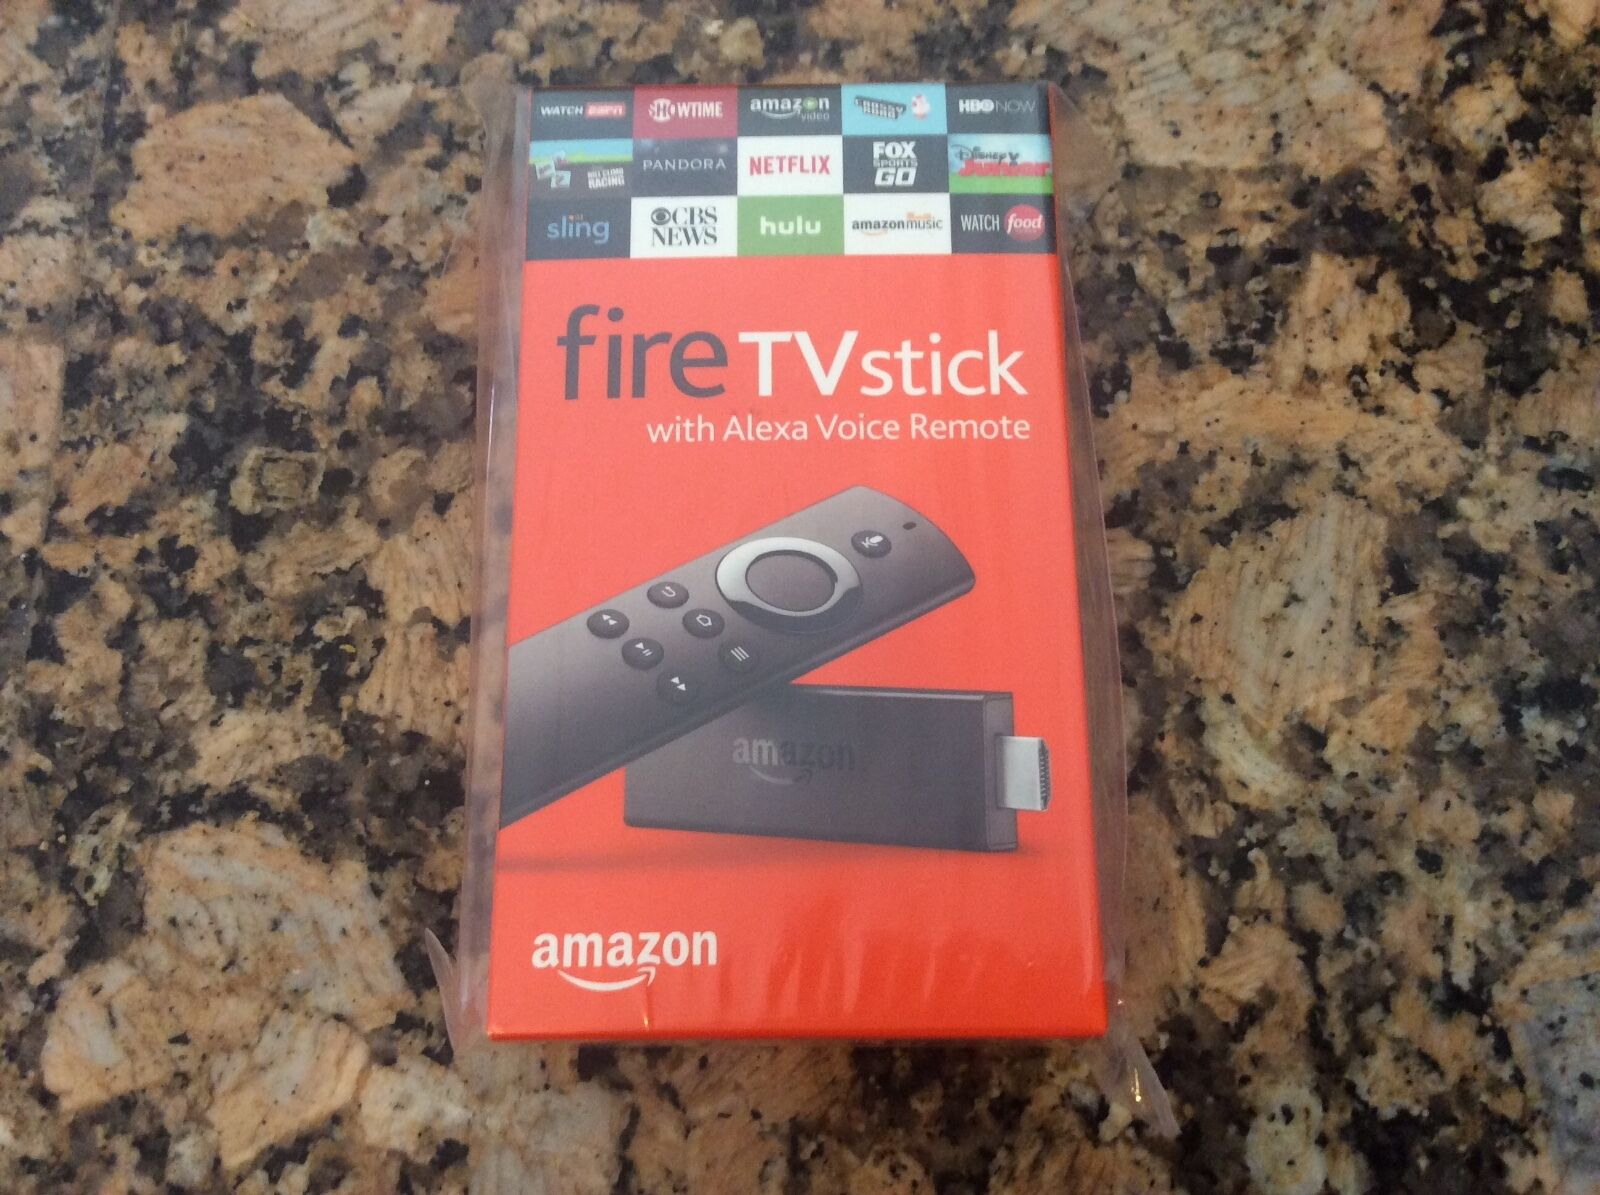 $41.90 - Amazon Fire Tv Stick w/Alexa Voice Remote Streaming- Latest! 2nd Gen! Brand New!